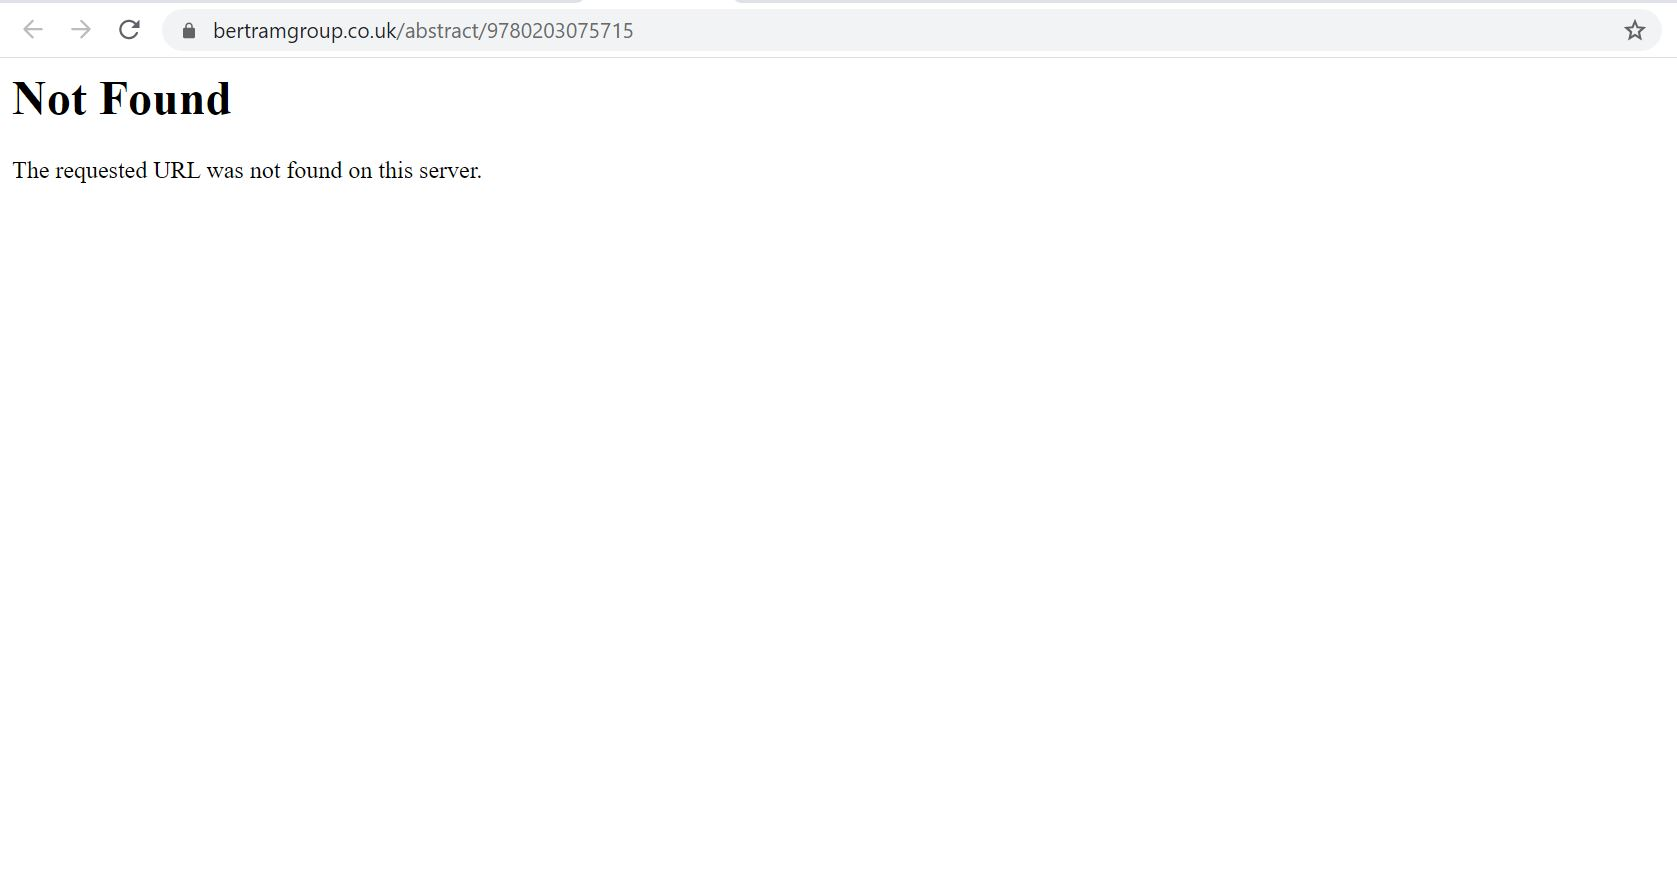 Screenshot reading: Not found. The requested URL was not found on this server.